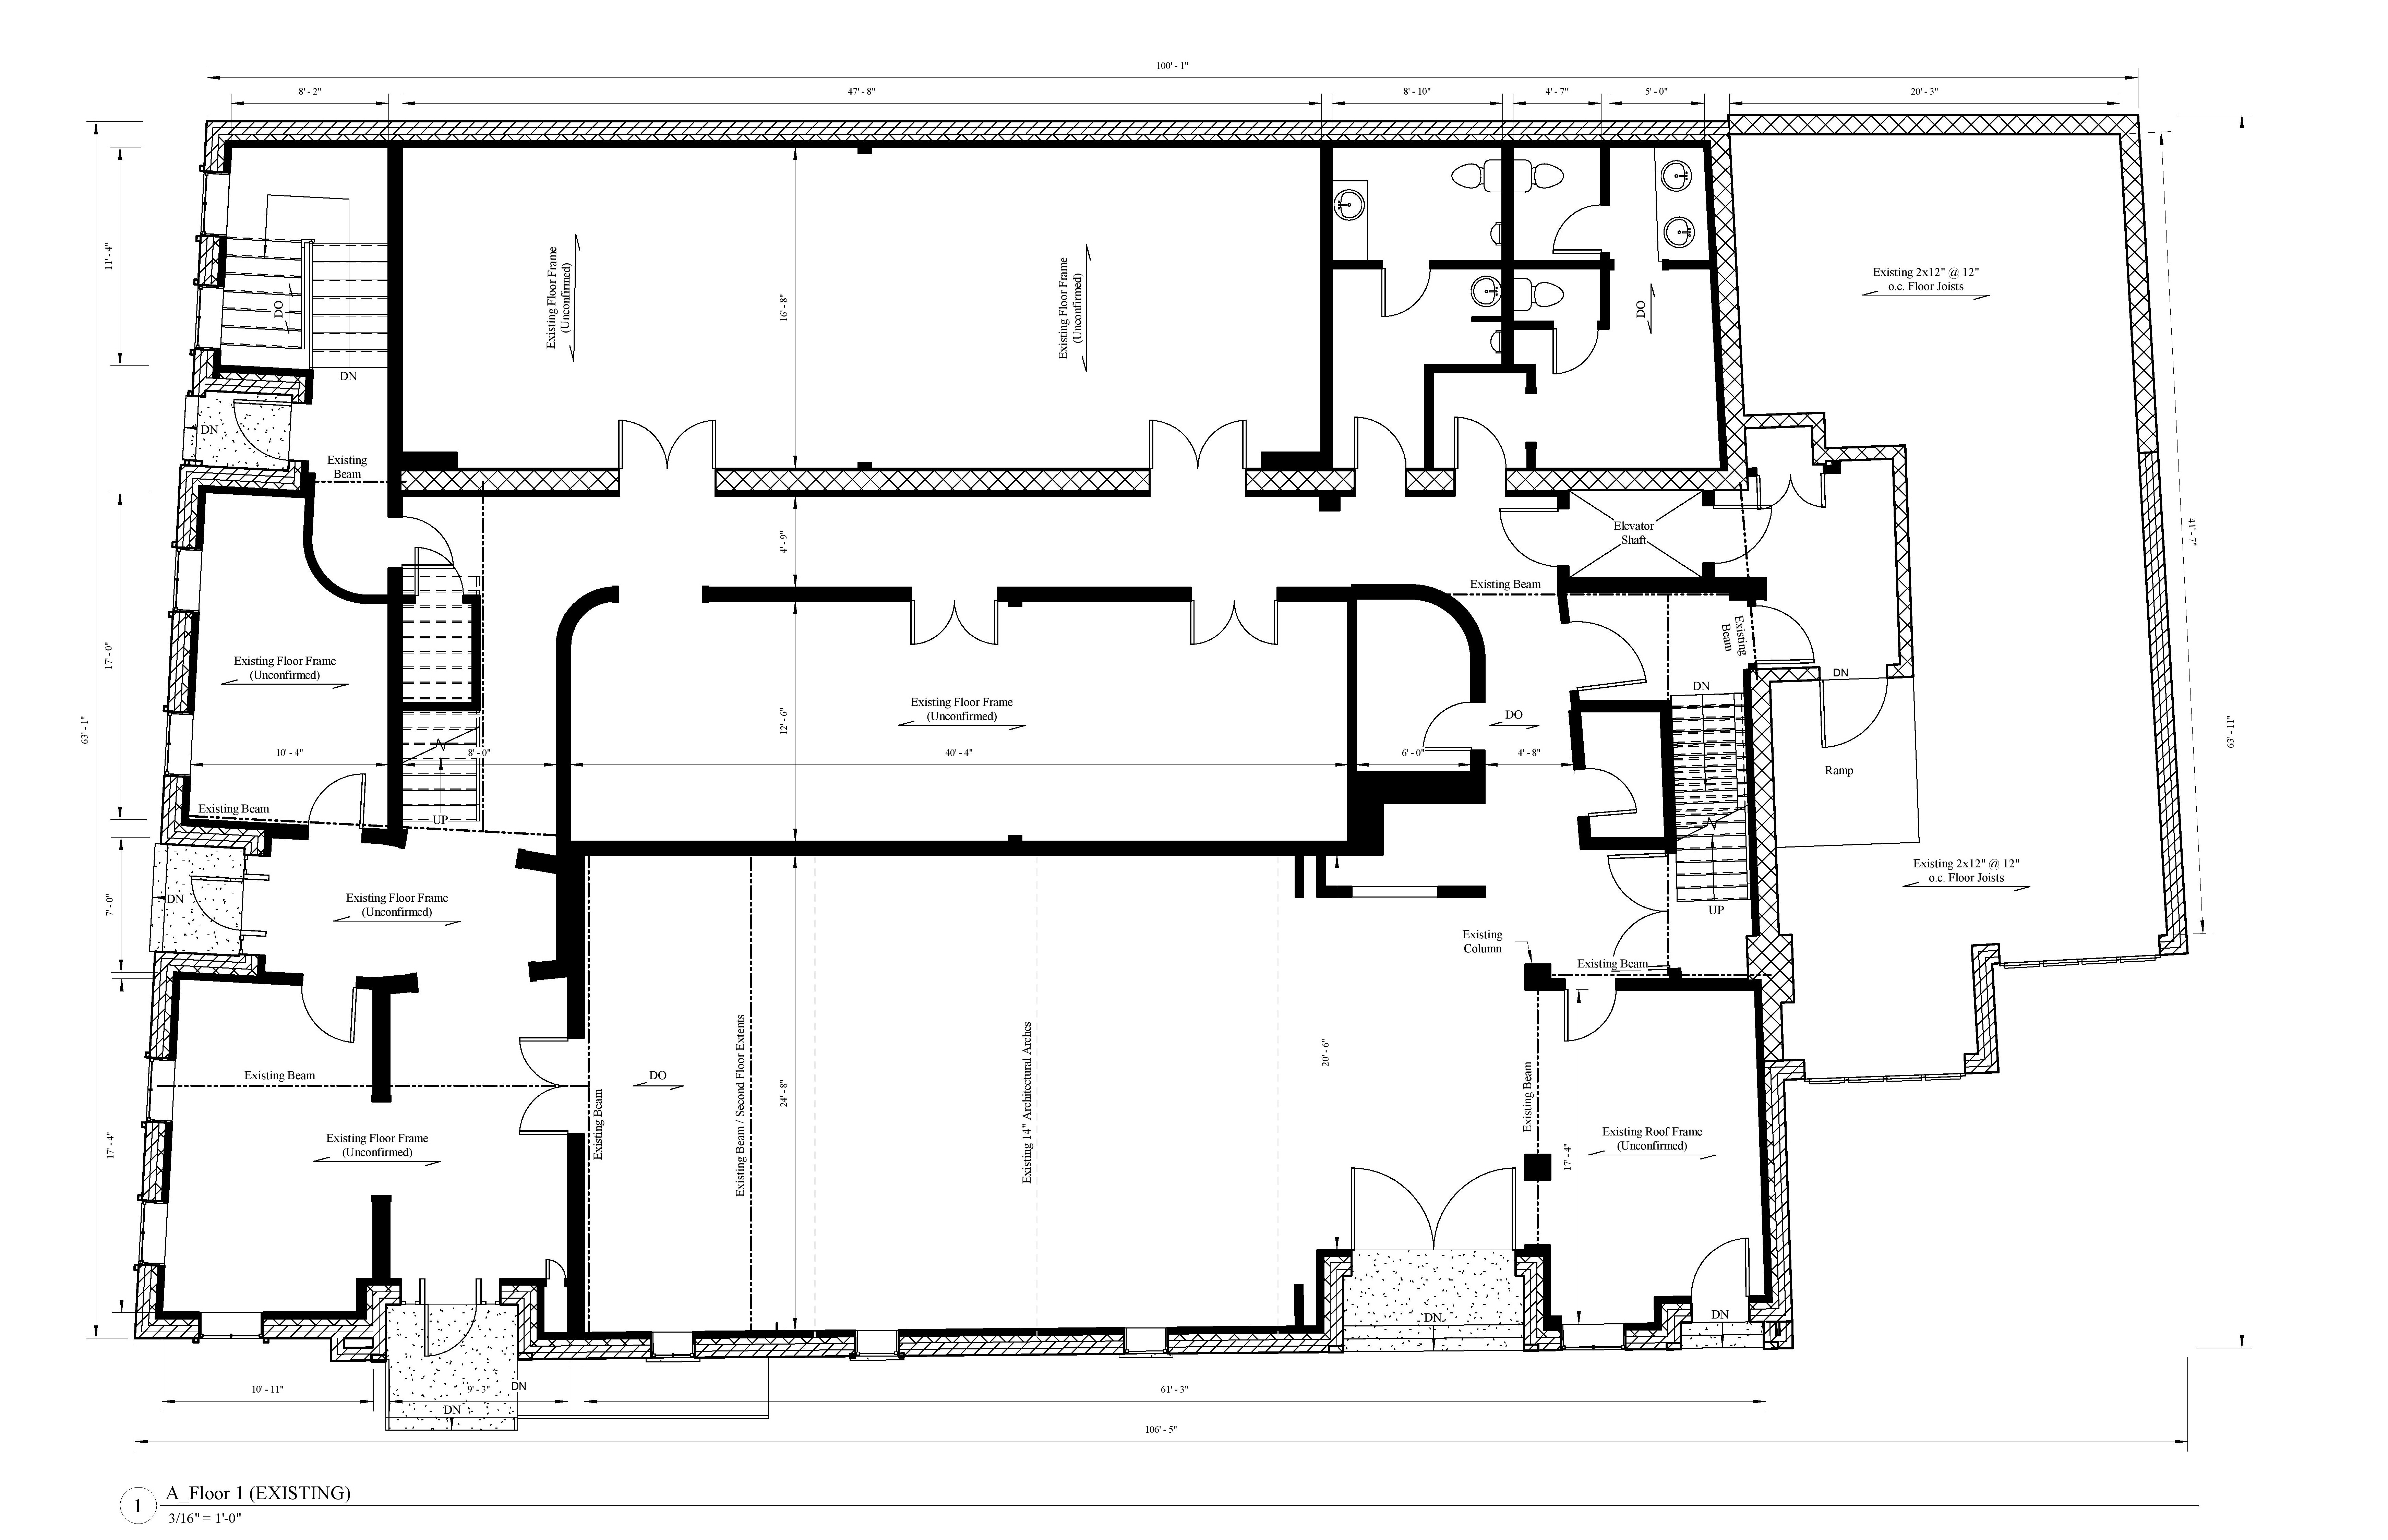 of an existing floor plan to a large industrial building.